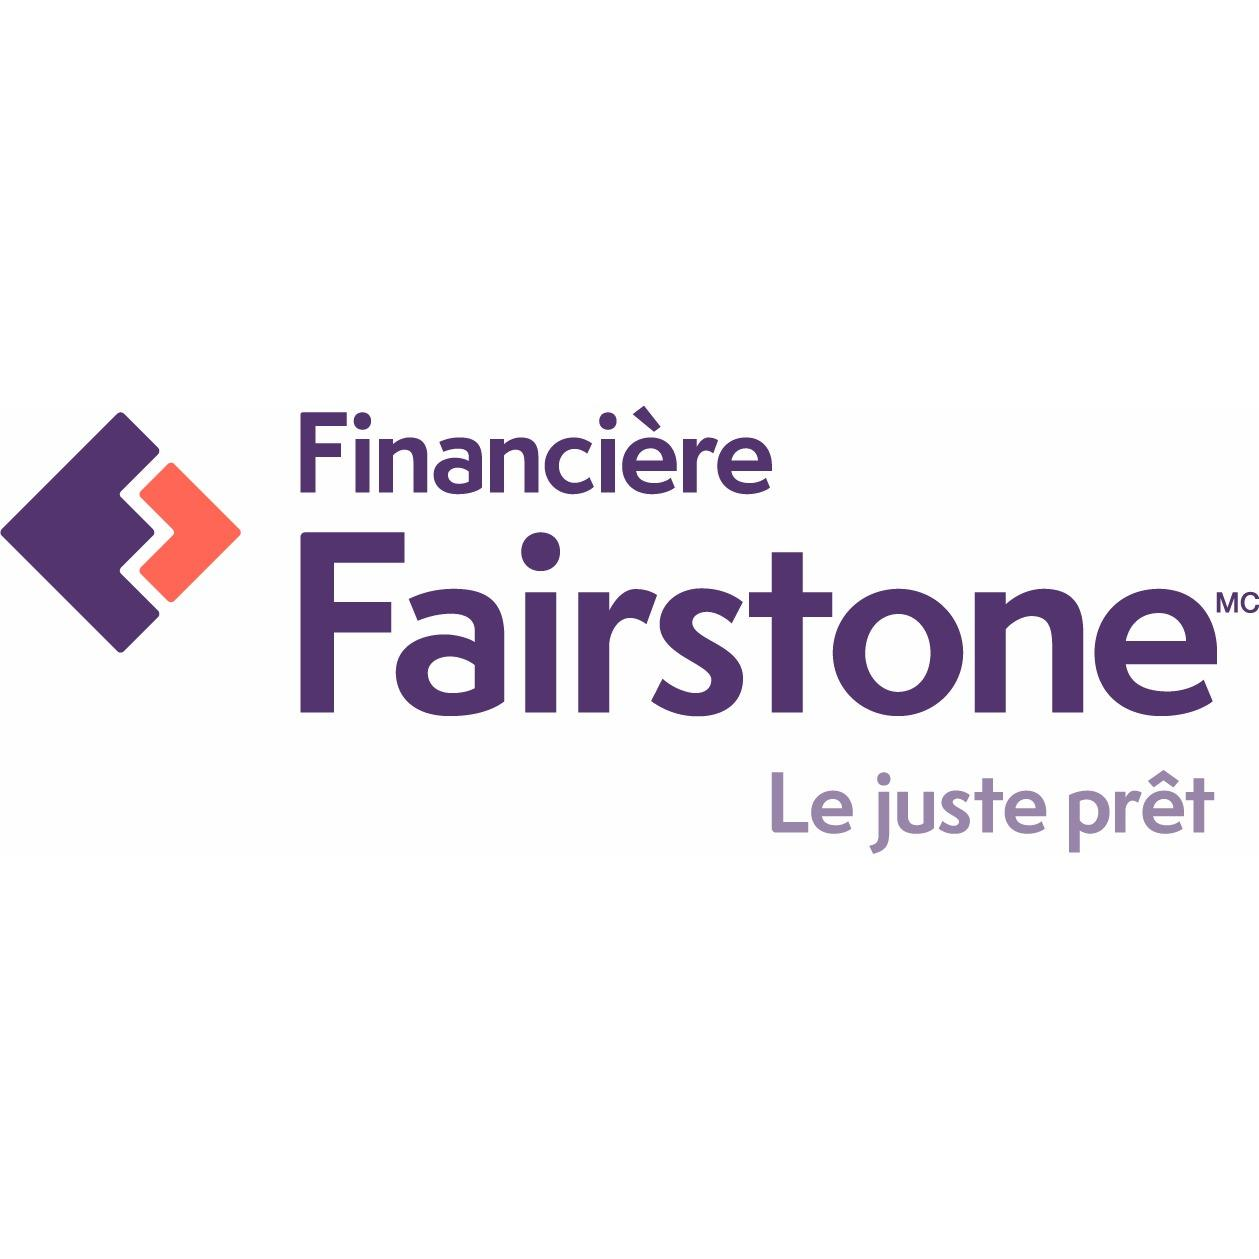 Fairstone, formerly CitiFinancial® à Sainte-Foy